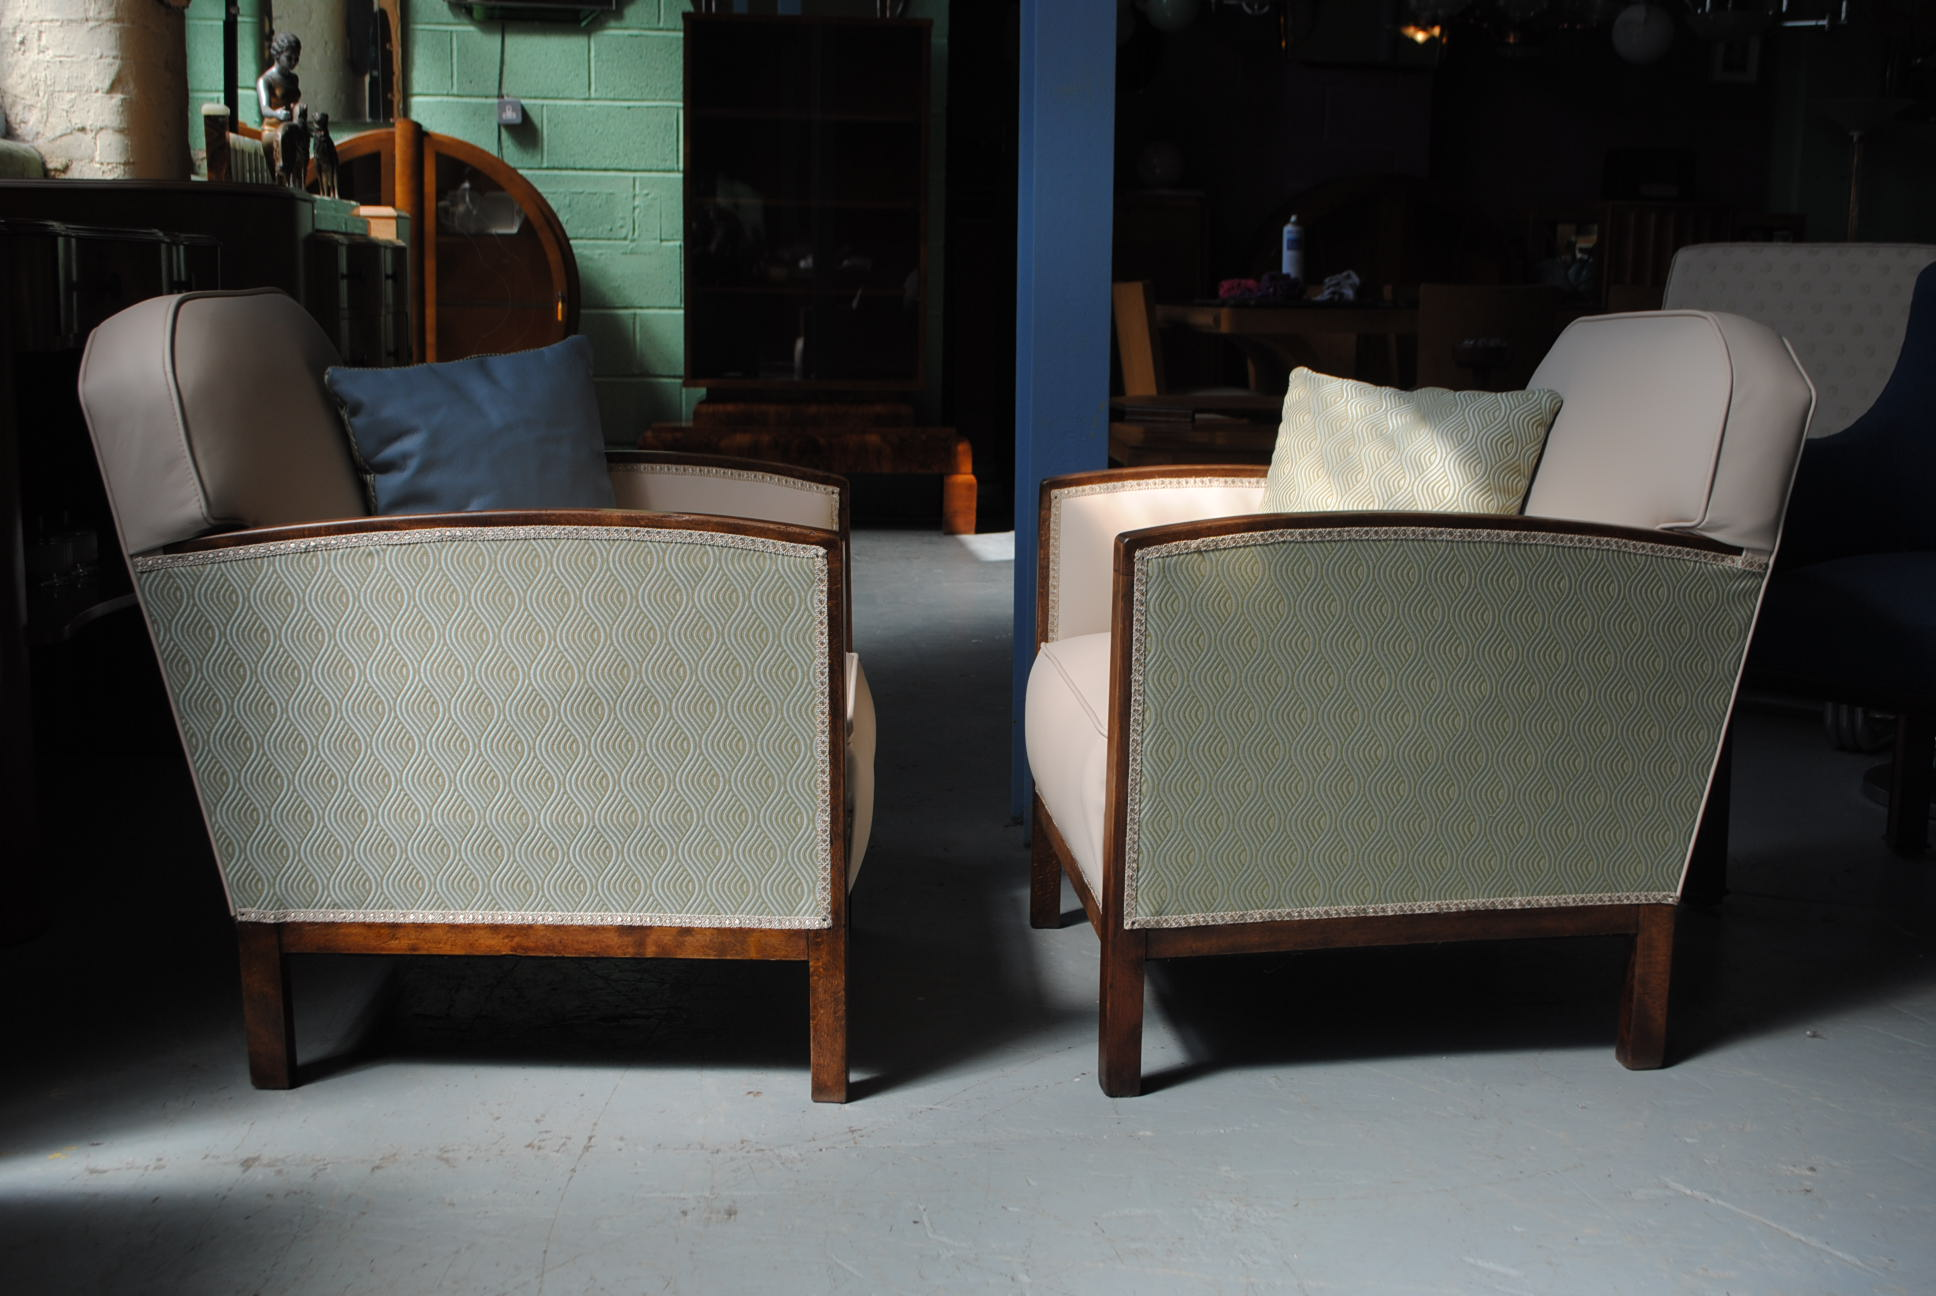 Pair Of Art Deco Fireside Chairs Cloud 9 Art Deco